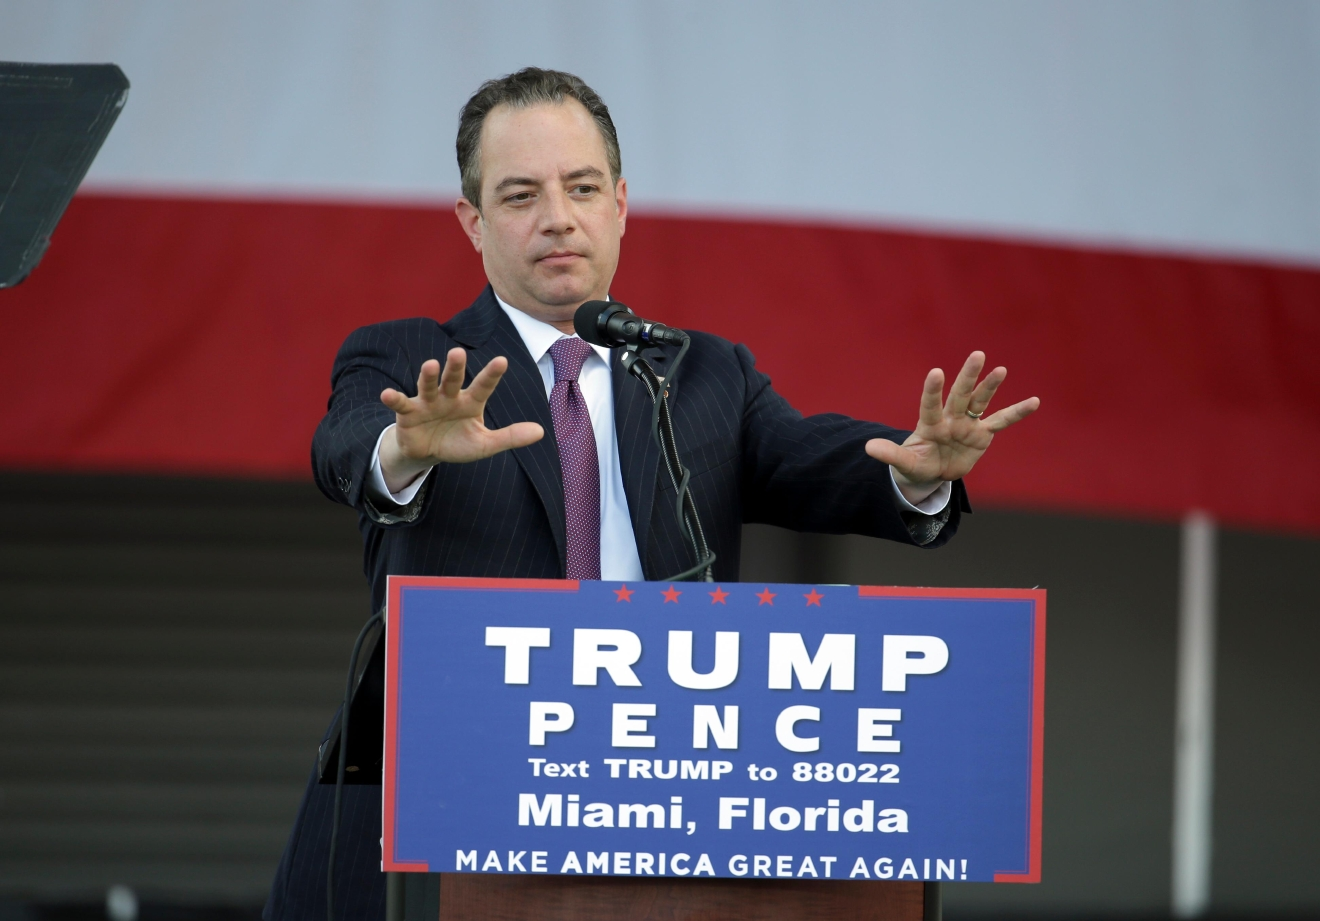 Reince Priebus, chairman of the Republican National Committee, speaks at a campaign rally for presidential candidate DonaldTrump at Bayfront Park Amphitheater, Wednesday, Nov. 2, 2016, in Miami. (AP Photo/Lynne Sladky)